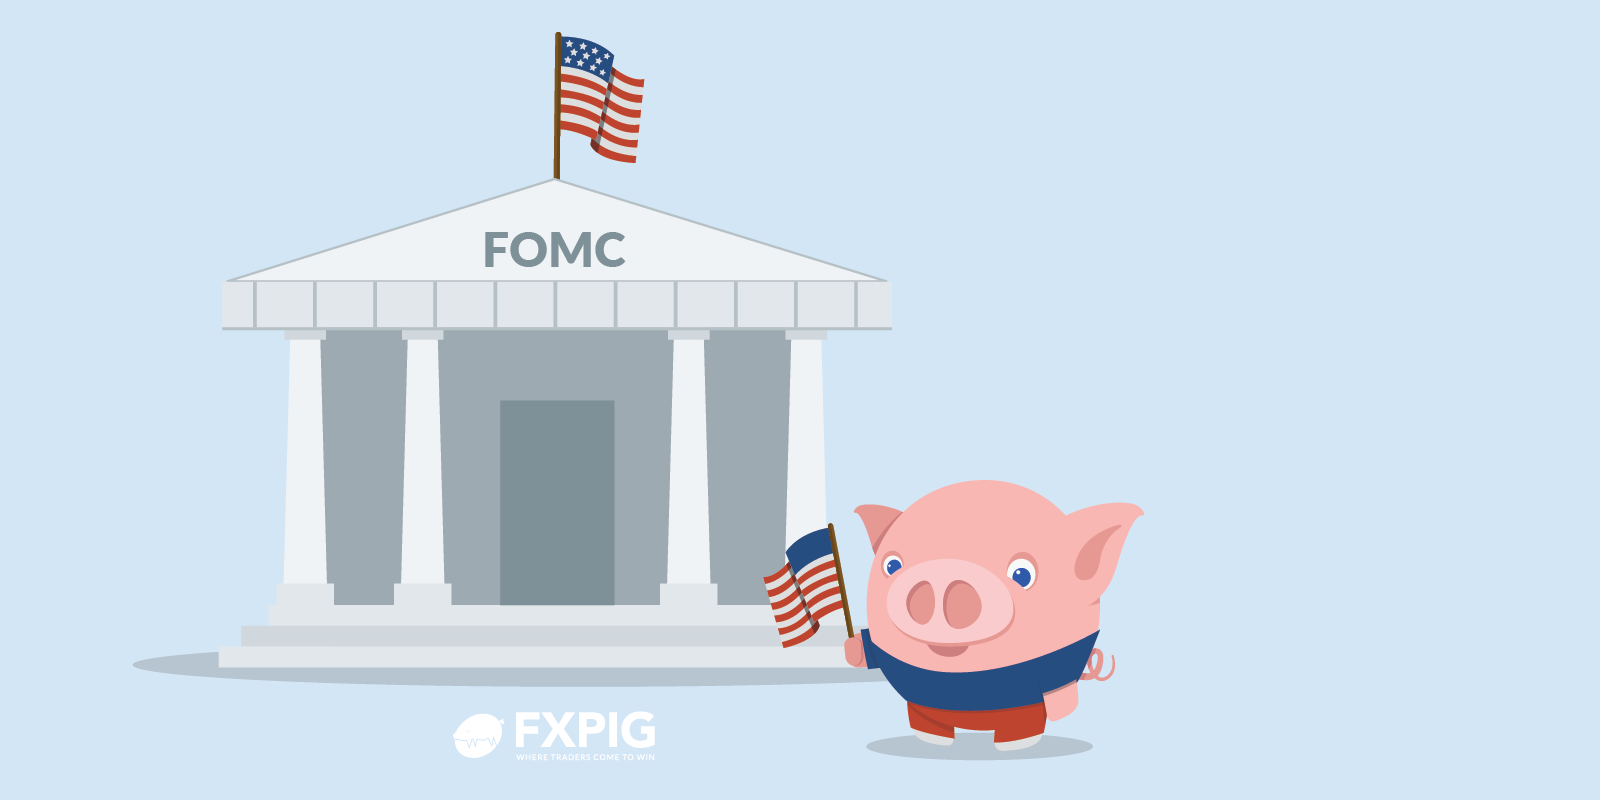 FOMC_Major-Banks_dovish_FXPIG_FOREX